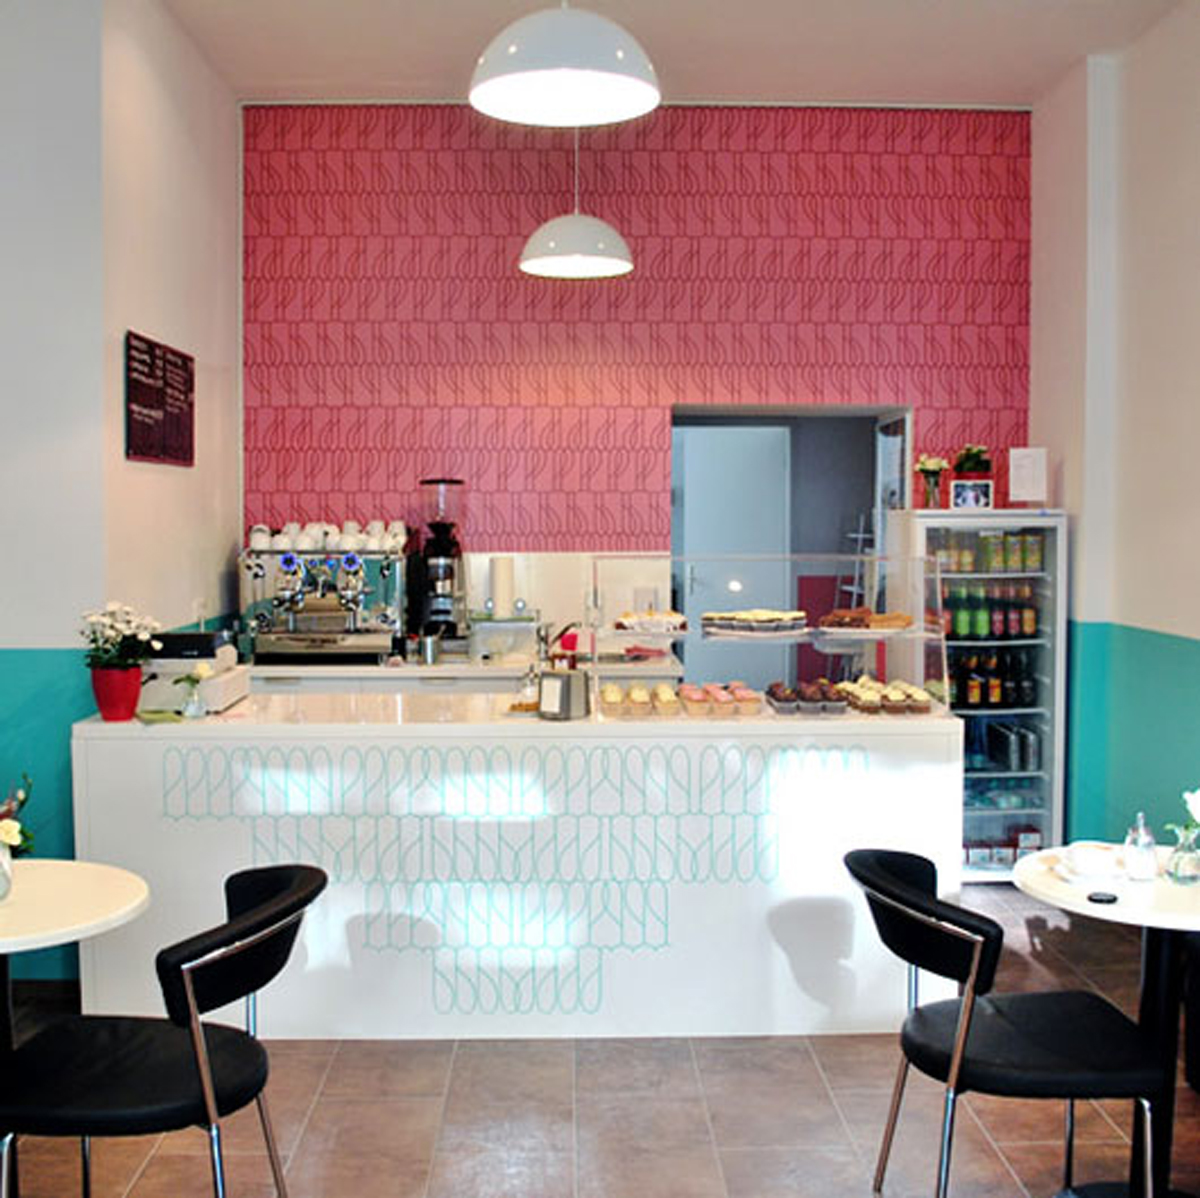 Retro cake shop designs - Retro interior design ...